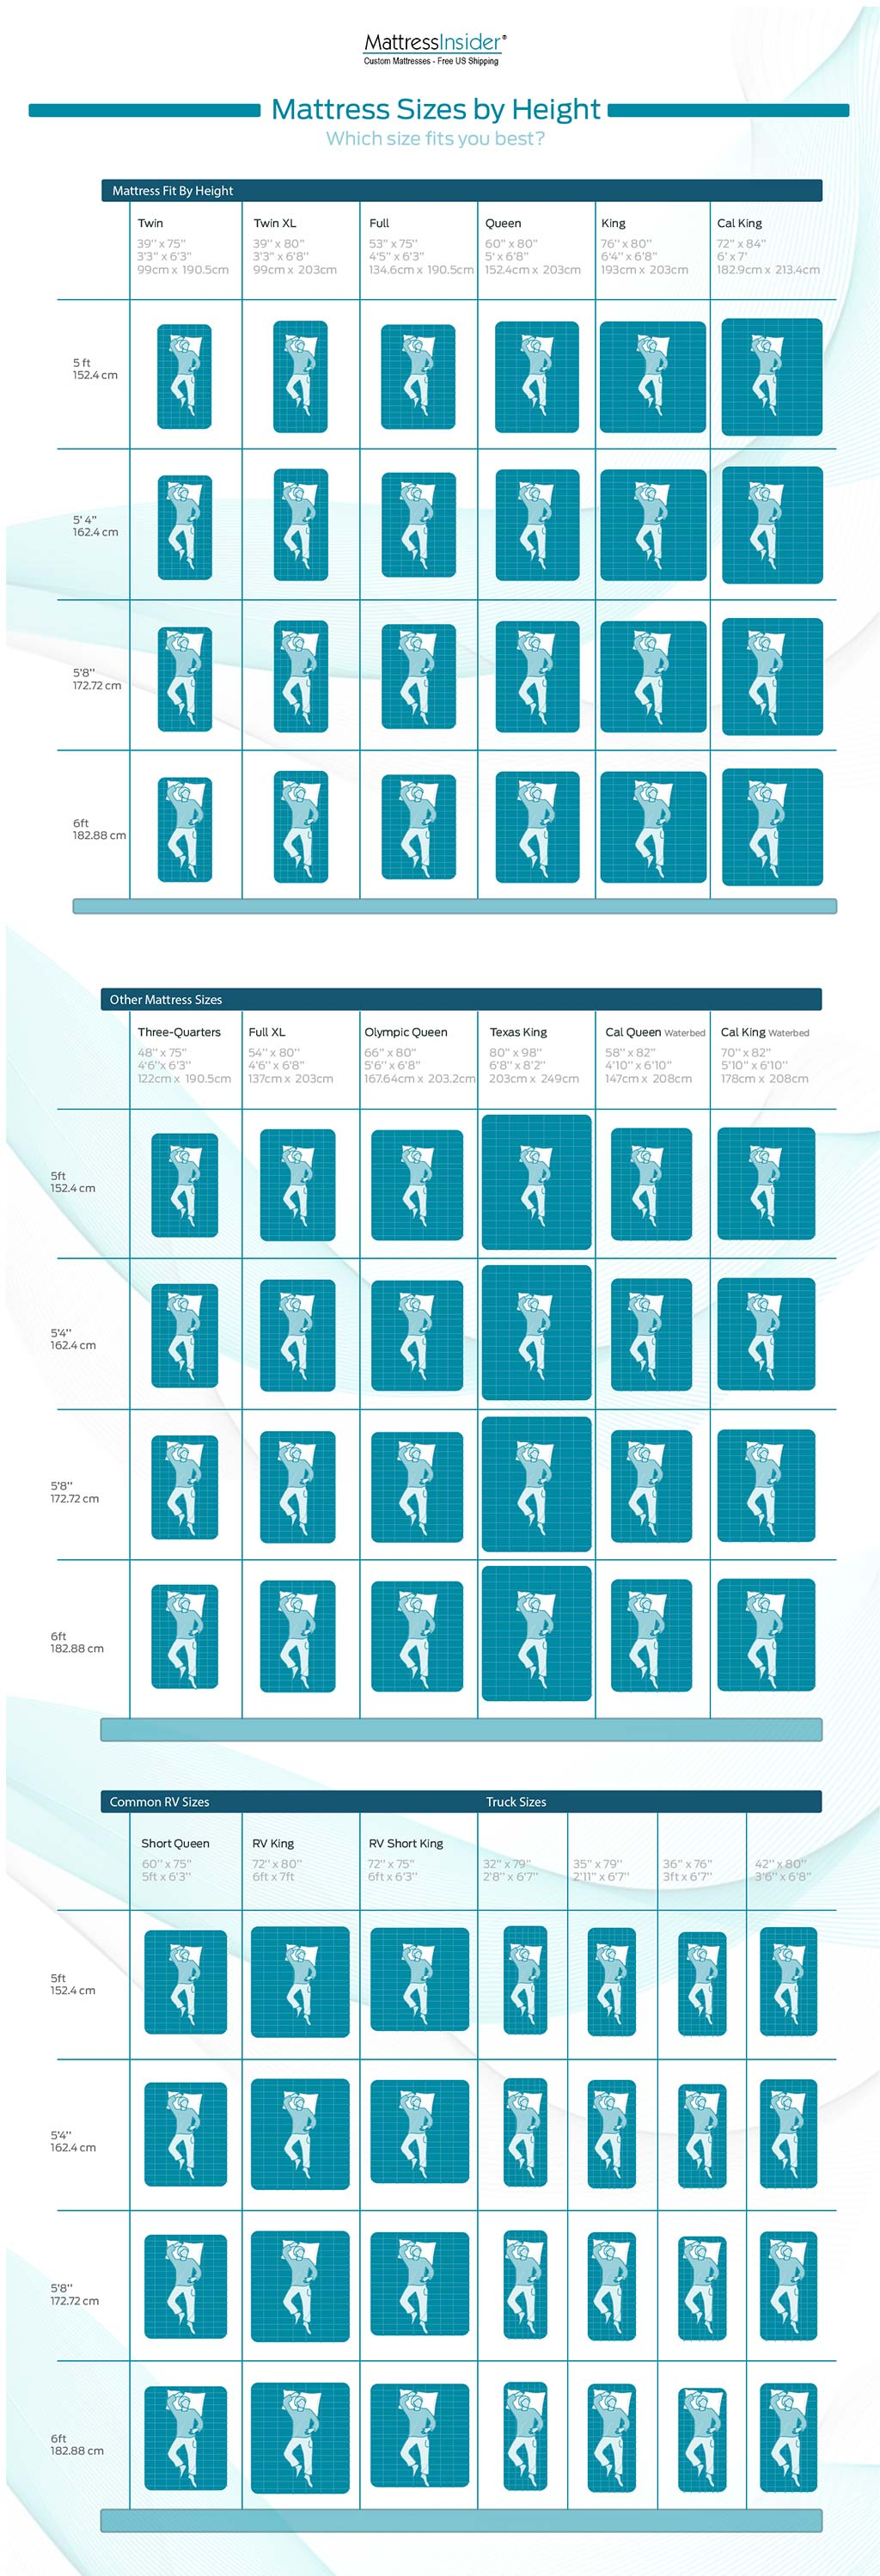 Brilliant Mattress Fit By Height Infographic King Vs California King Which Is Better King Vs California King Vs Alaskan King houzz 01 King Vs California King